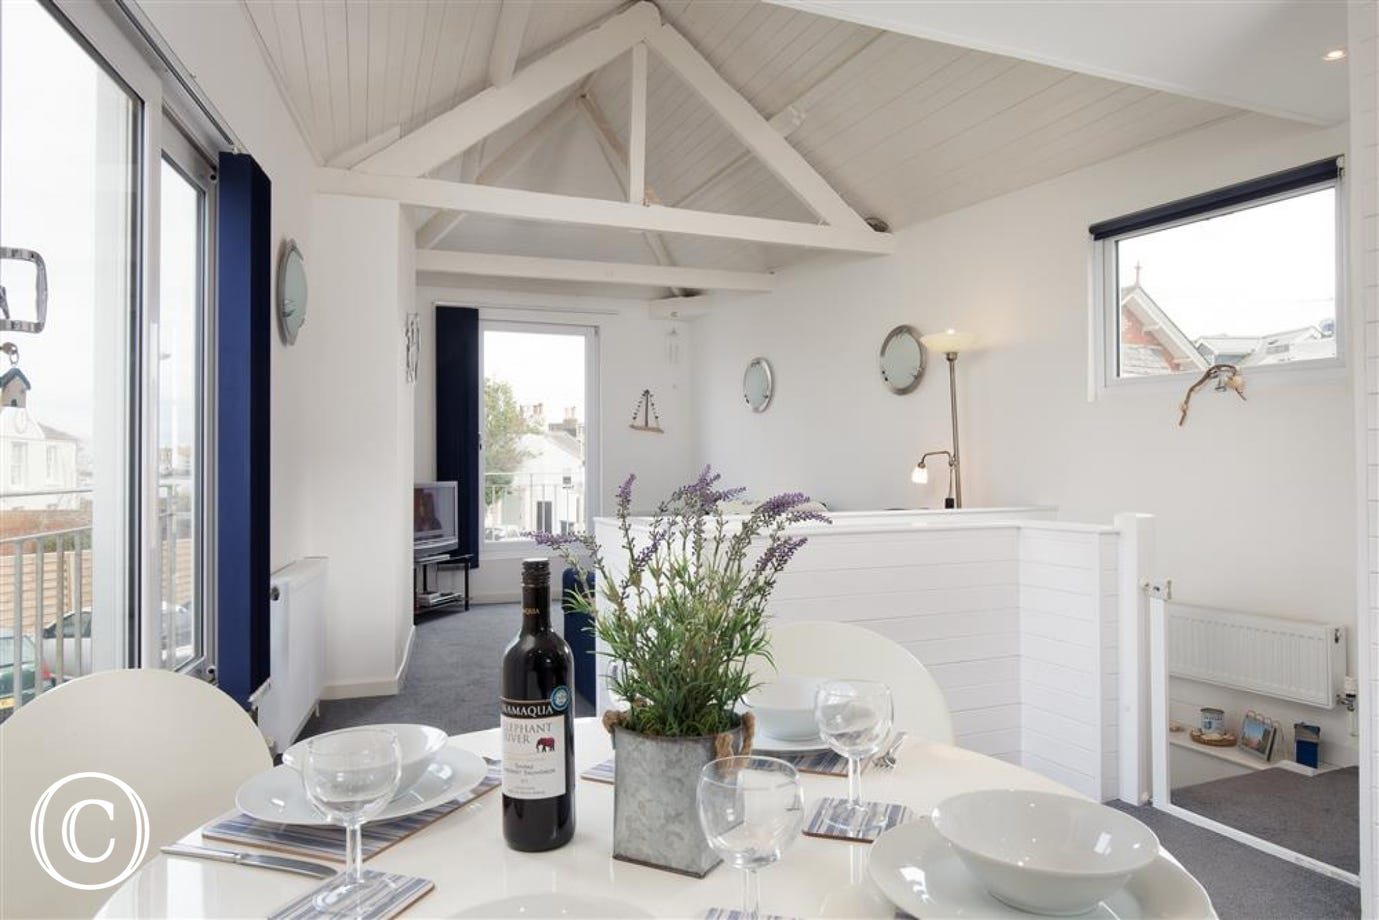 Oyster Cottage, Shaldon - Charming kitchen